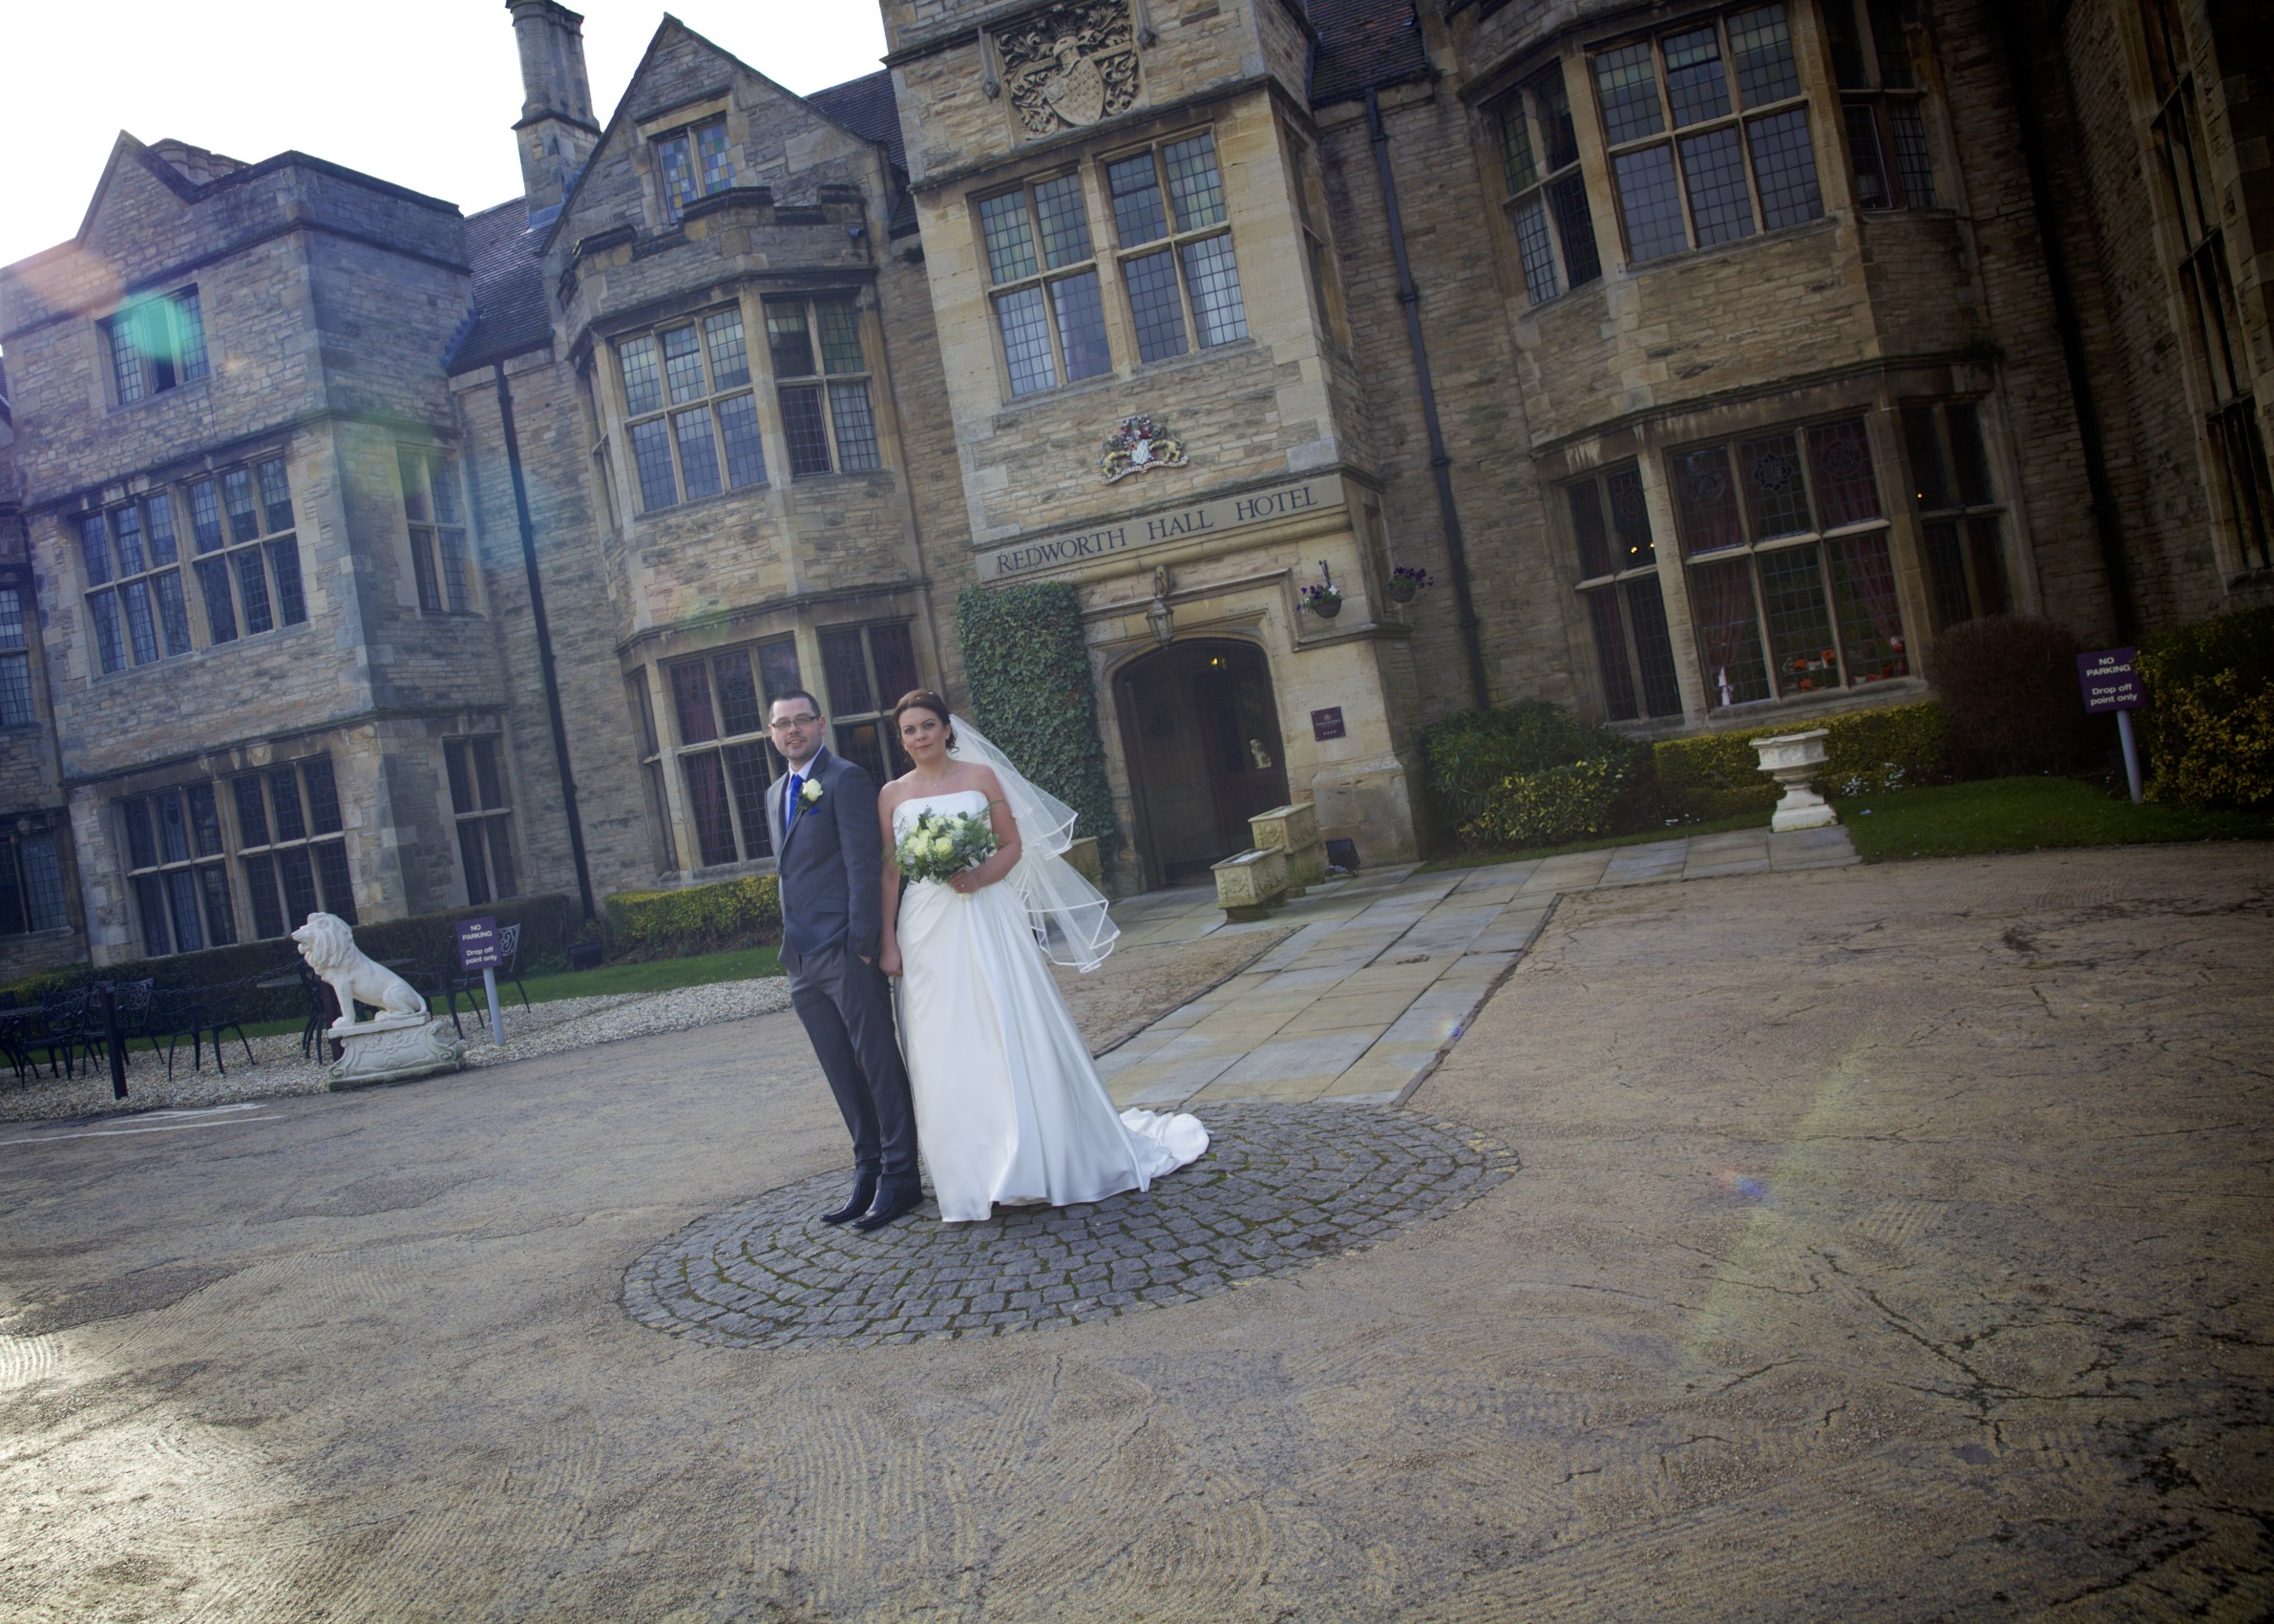 Redworth Hall - Entrance